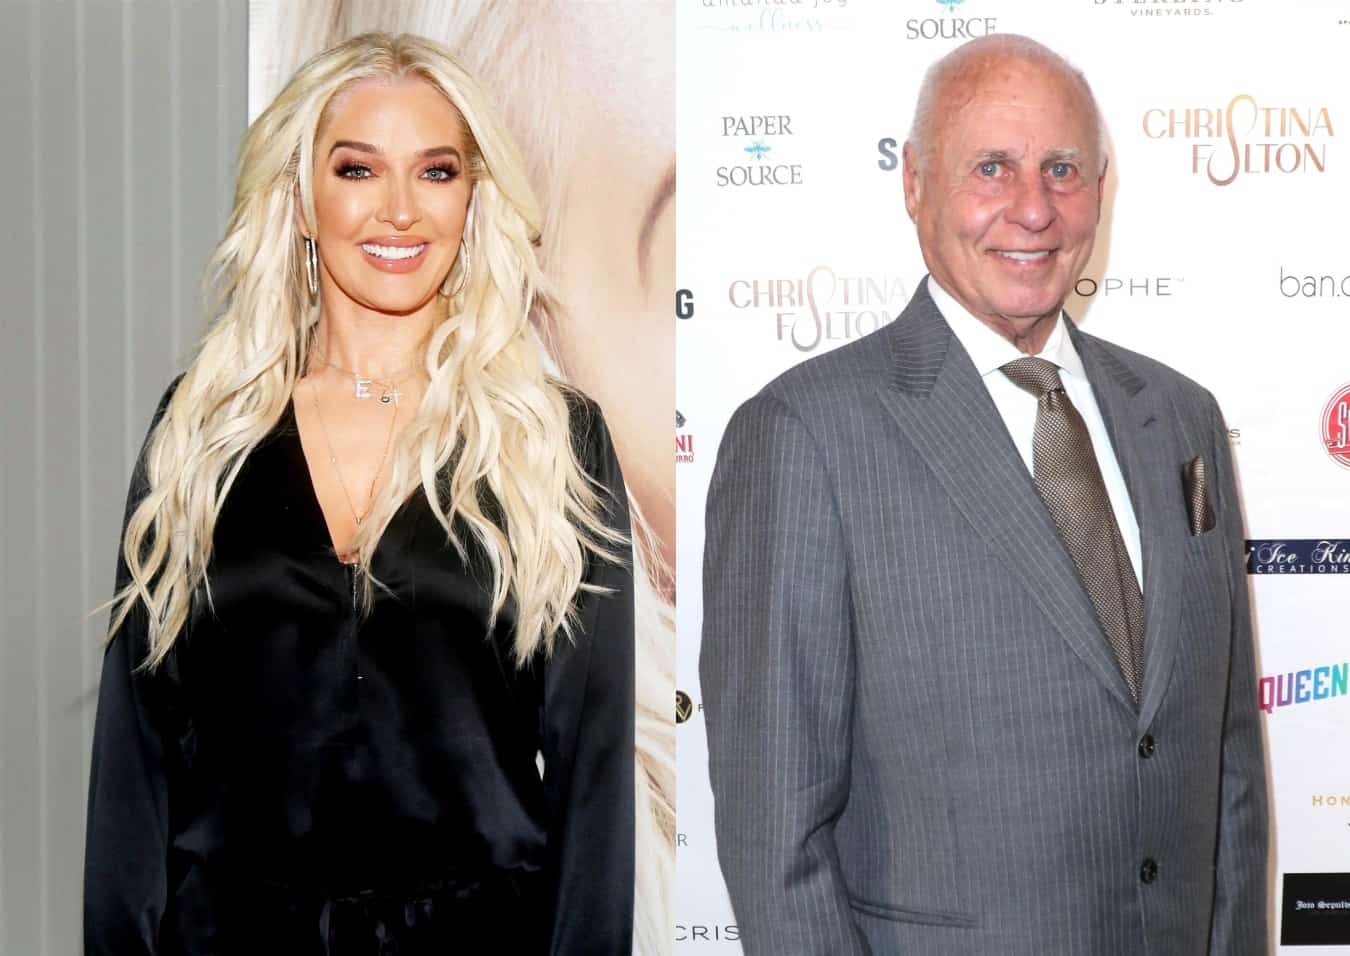 """Erika Jayne And Thomas Girardi Accused Of Having Secret """"Daughter"""" Funnel Money To Them From Firm, Plus Details Of Over $1.2 Million Embezzlement From Another Client Is Revealed As RHOBH Star Remains Unbothered"""